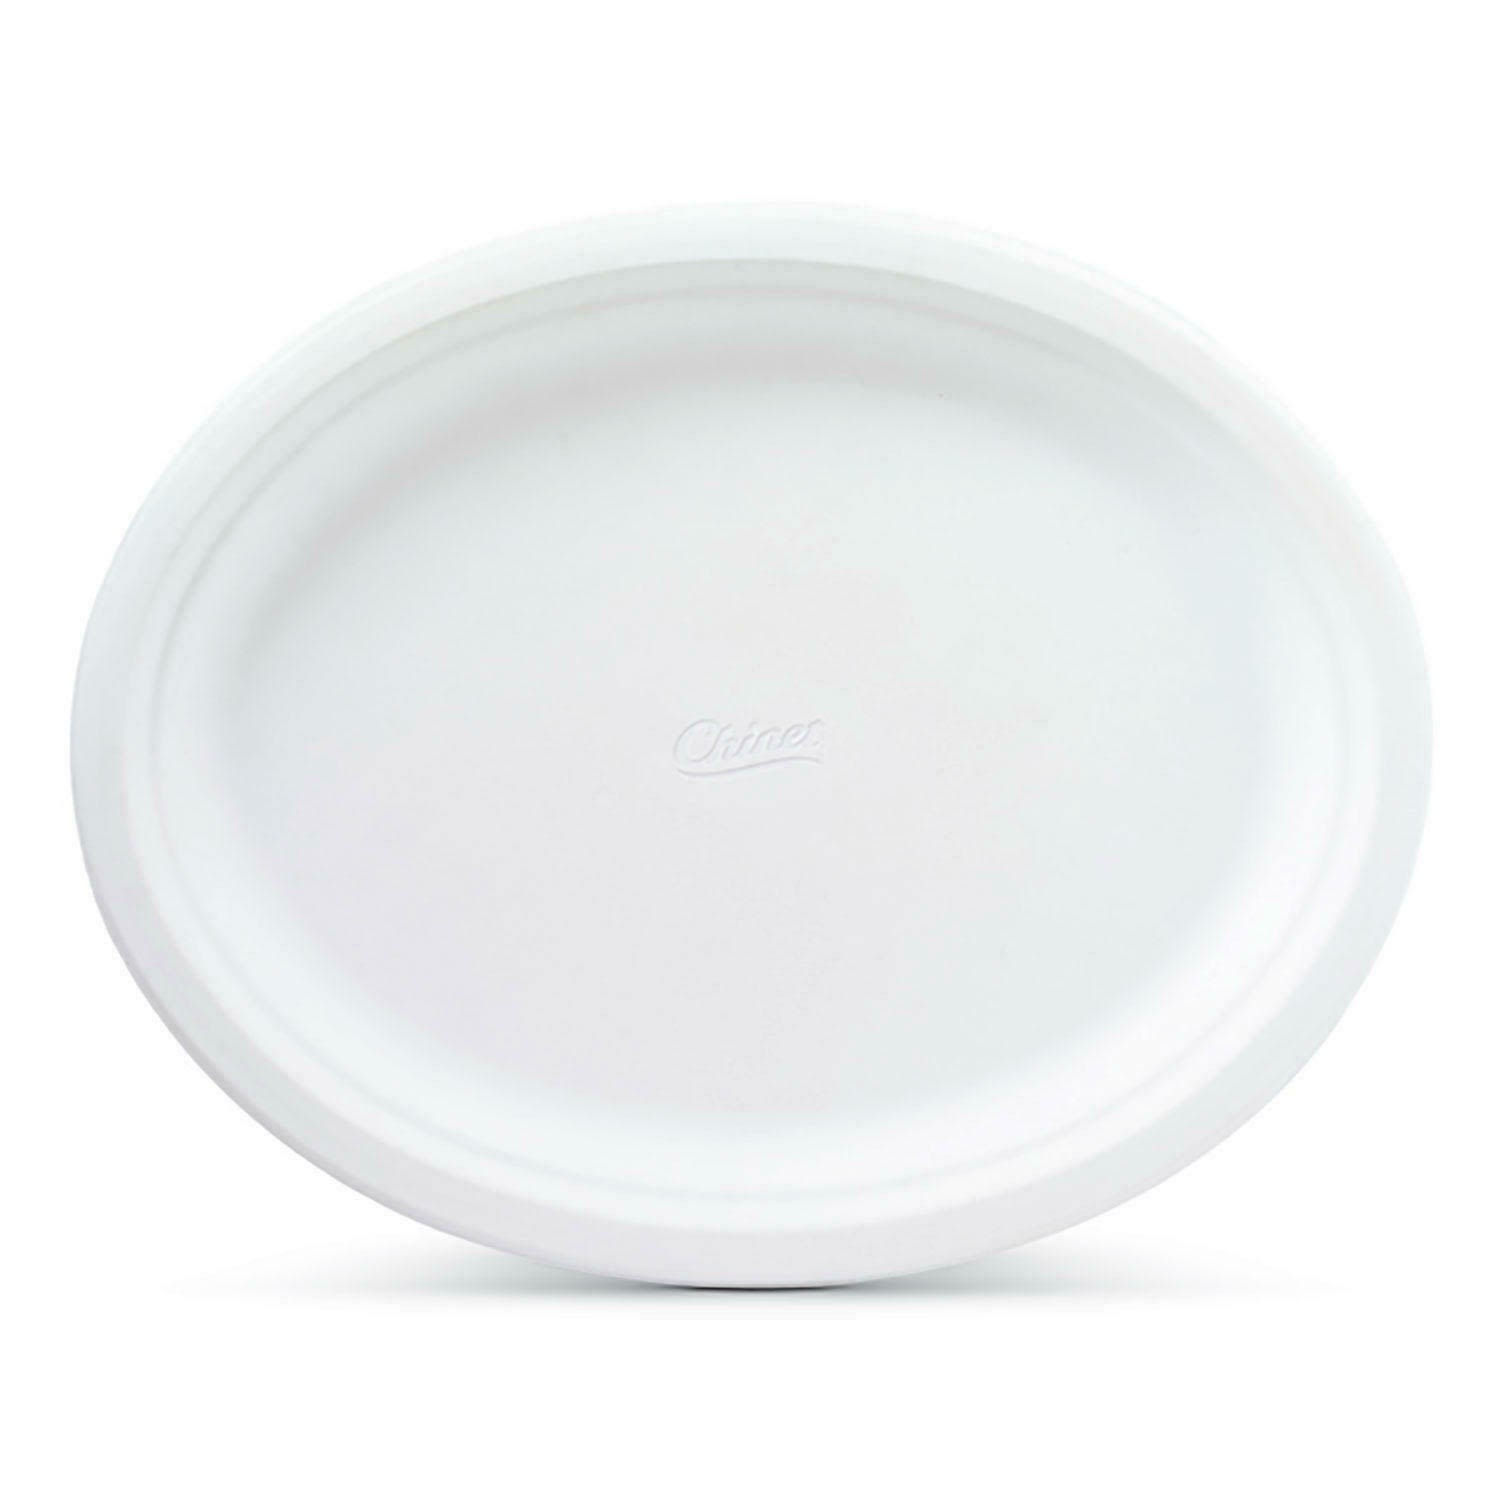 Chinet White Oval Plates, 10 Each